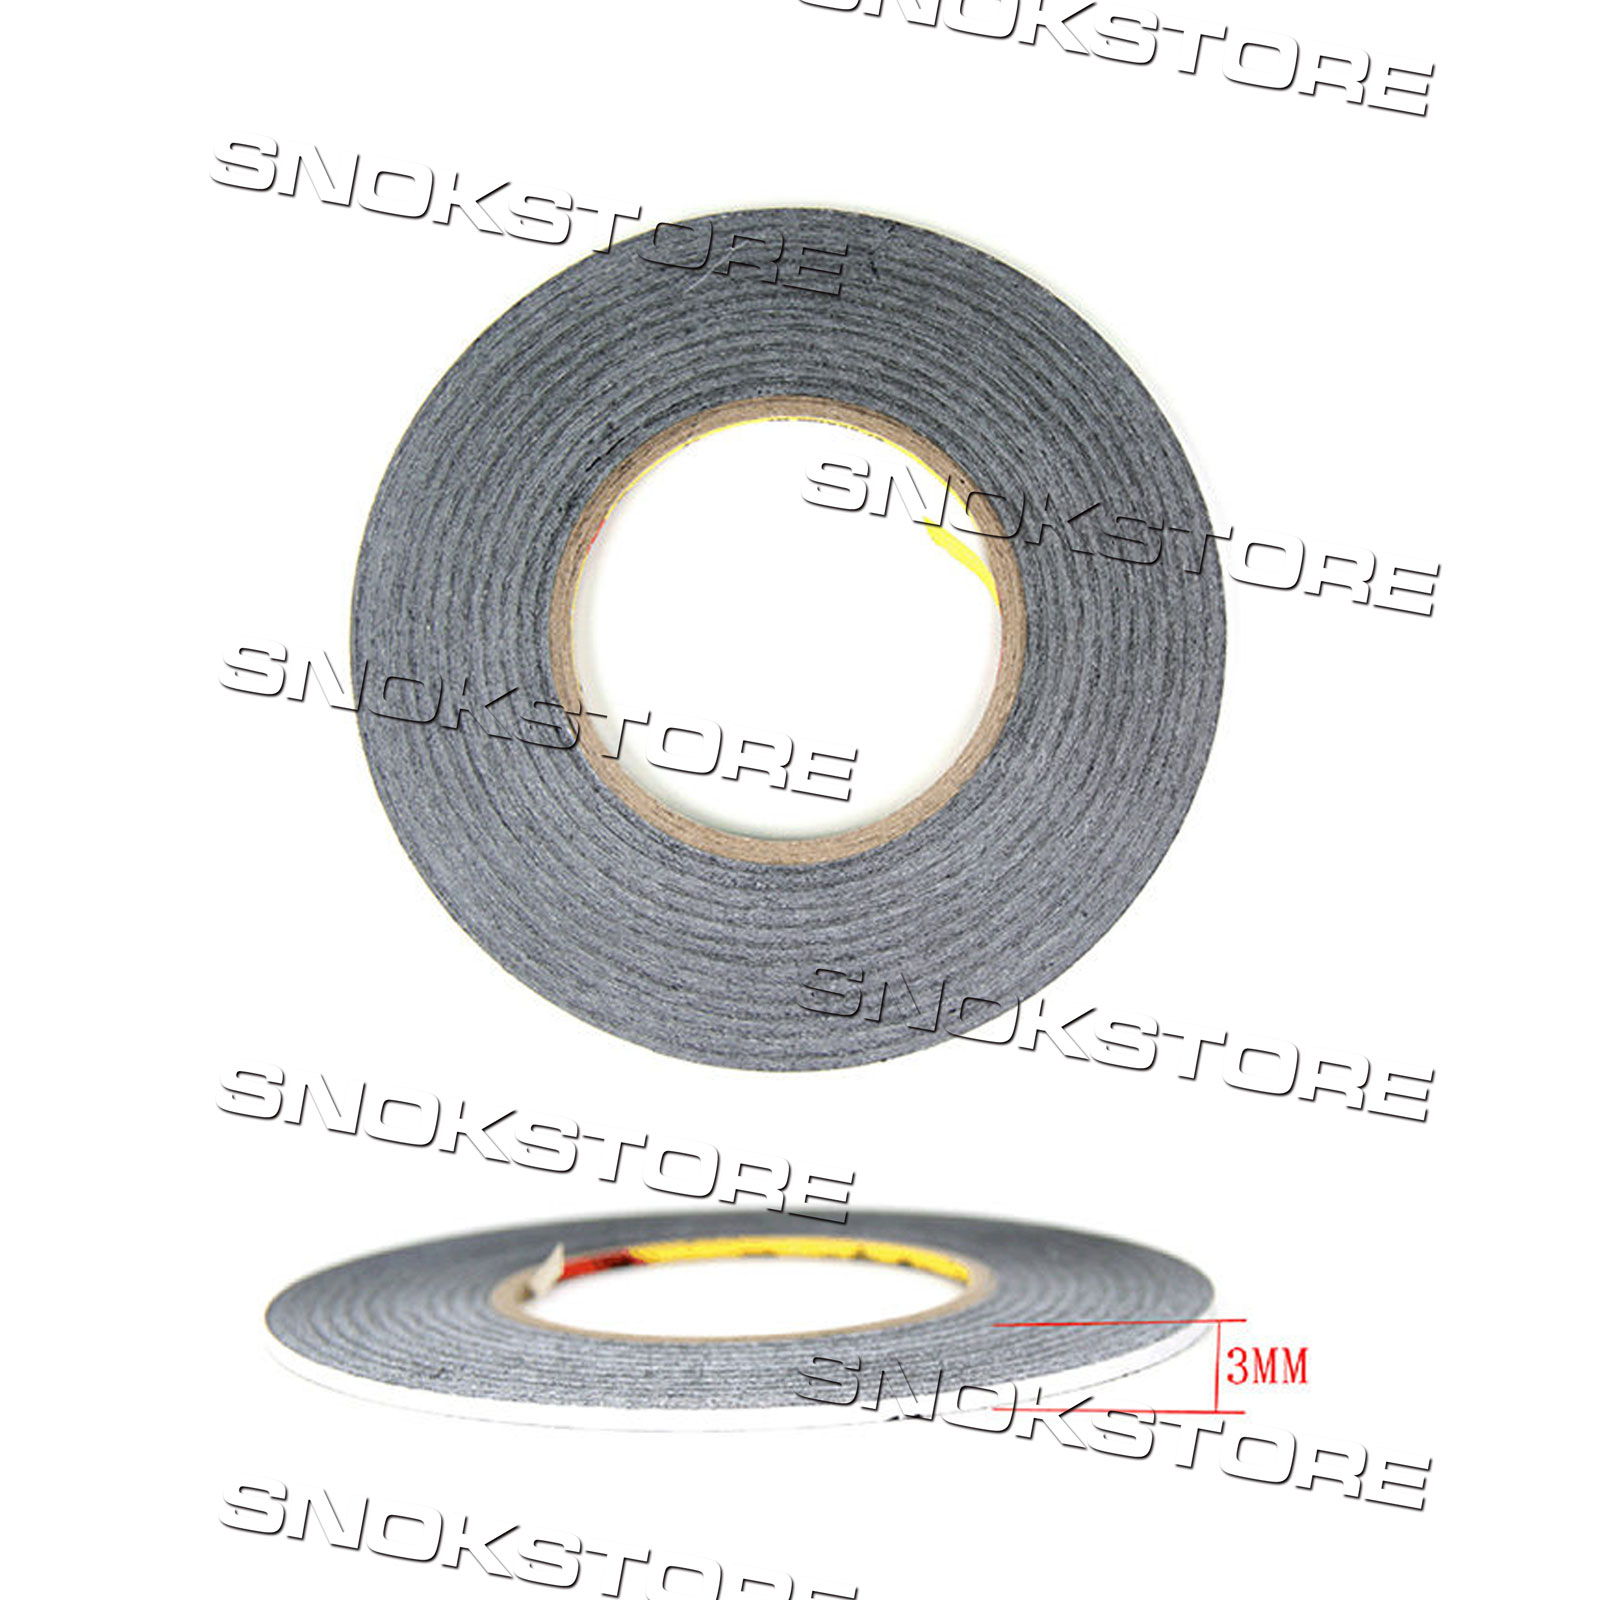 1X ROTOLO BIADESIVO PER LCD TOUCH SCREEN 3mmx50m ROLL SHIELD DOUBLE SIDED TAPE